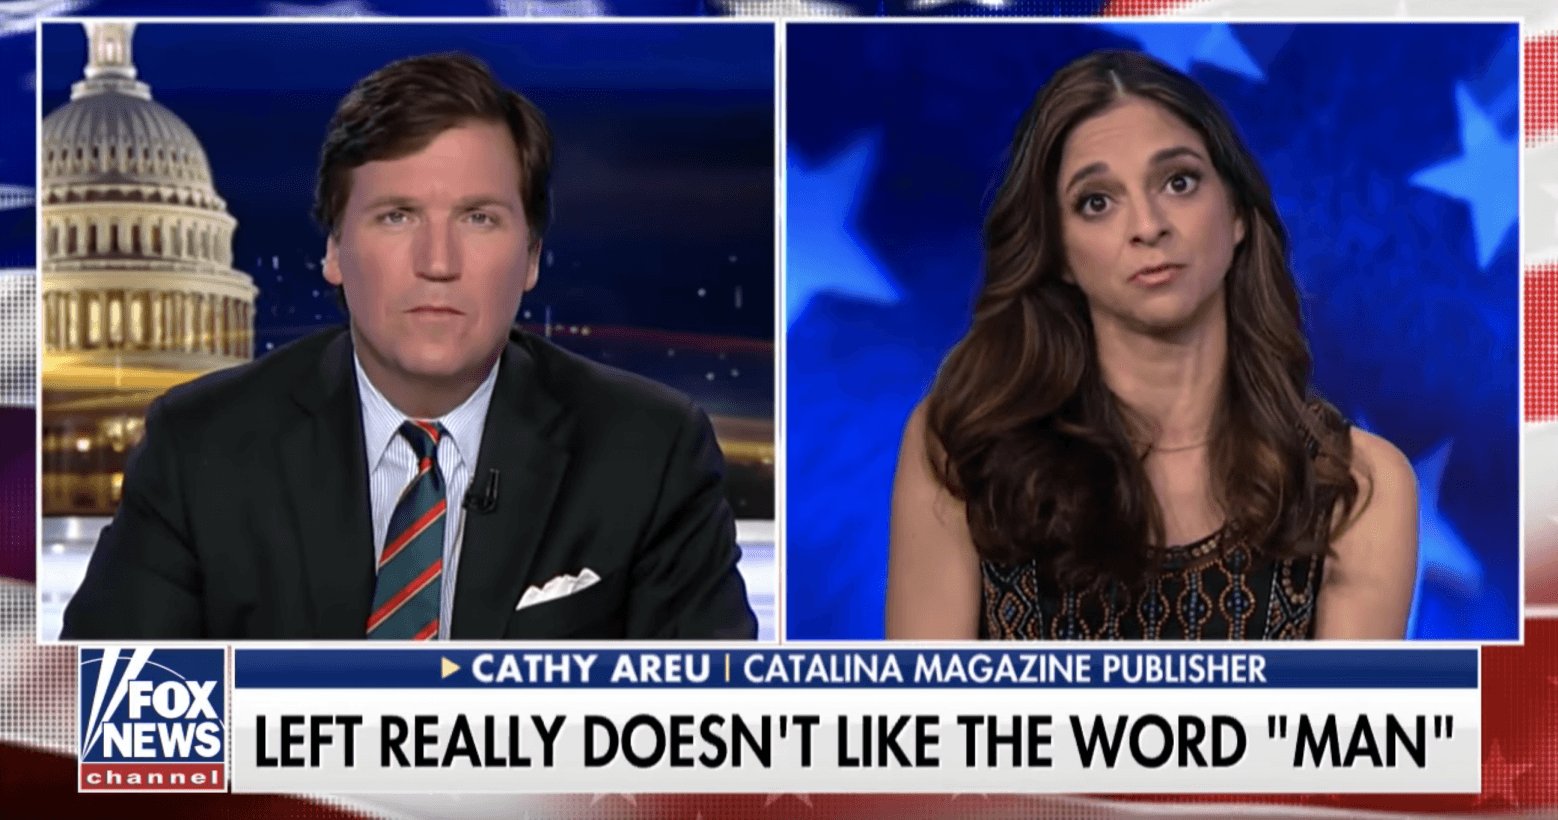 Fox triggers its own audience with misleading viral video